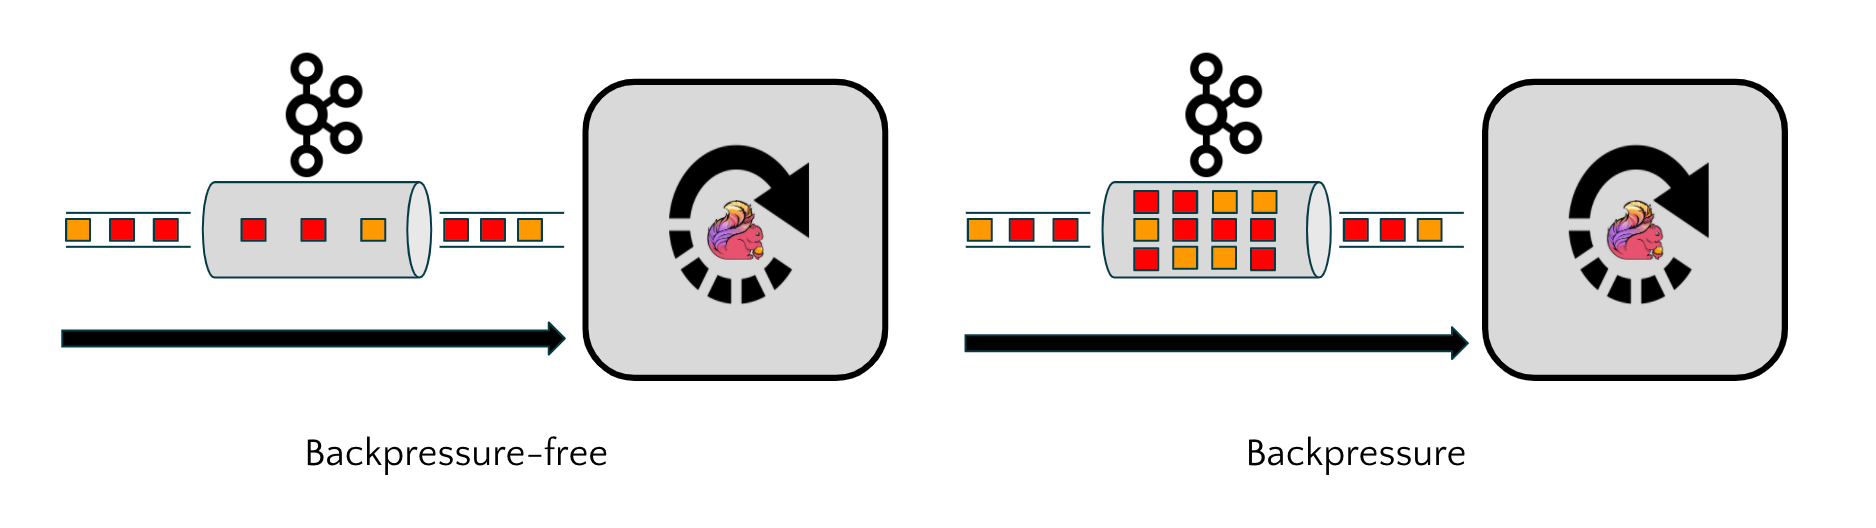 Using the lag metric in the Kafka connector to determine when a Flink application is moving from a backpressure-free to a backpressured state.